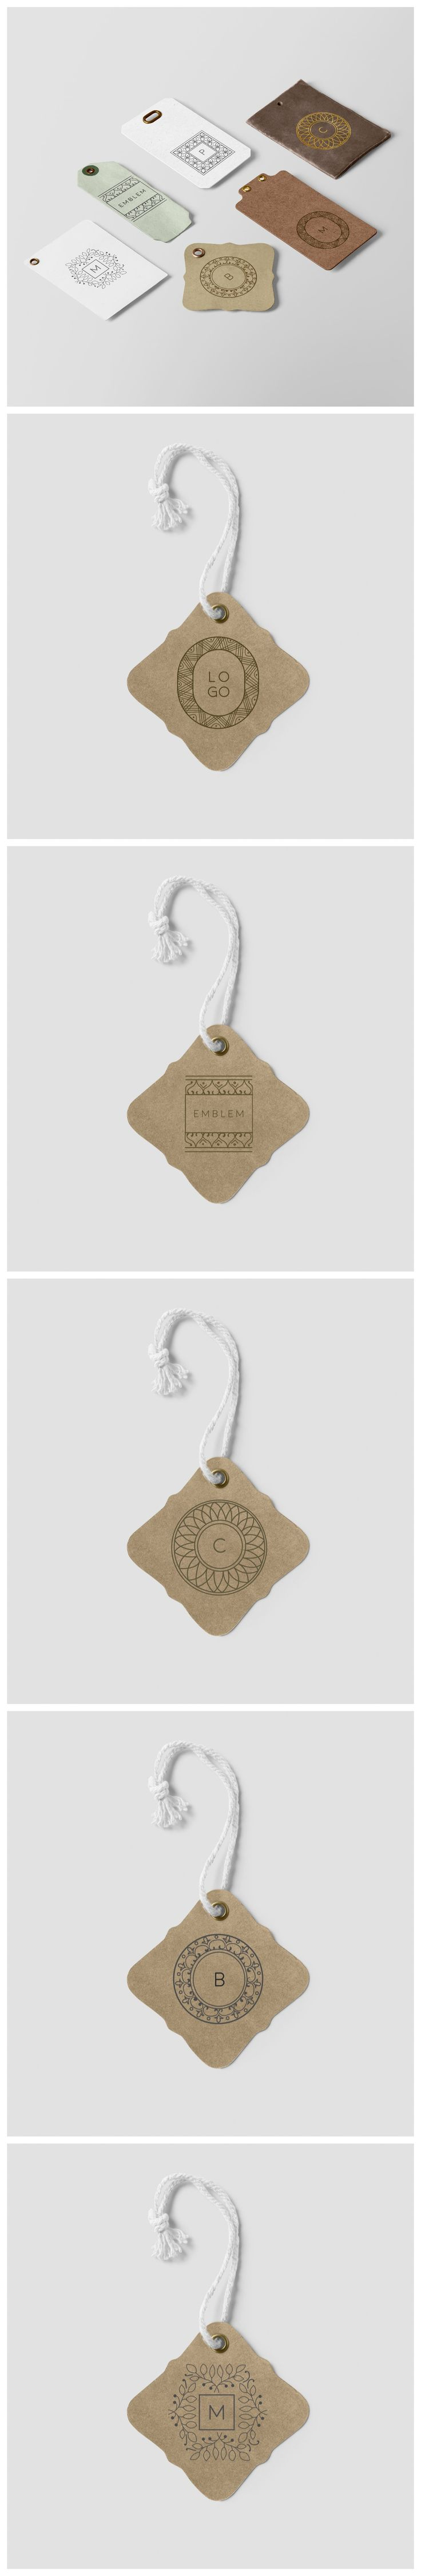 best 25 name tag design ideas on pinterest online sale offers random online and create a